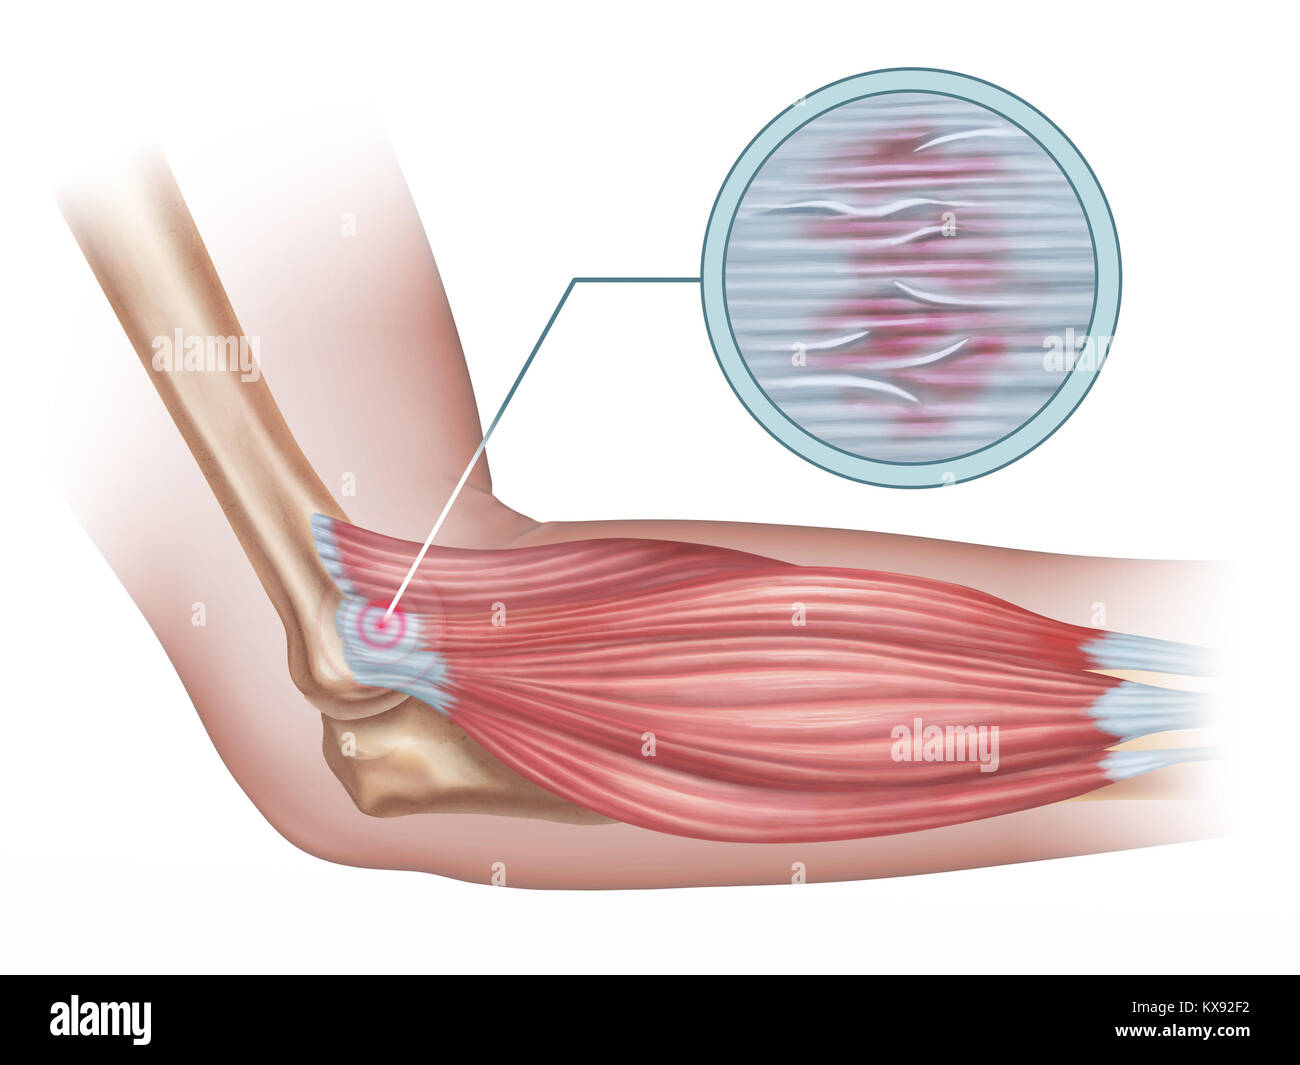 hight resolution of tennis elbow diagram showing a detail of the damaged tendon tissue digital illustration